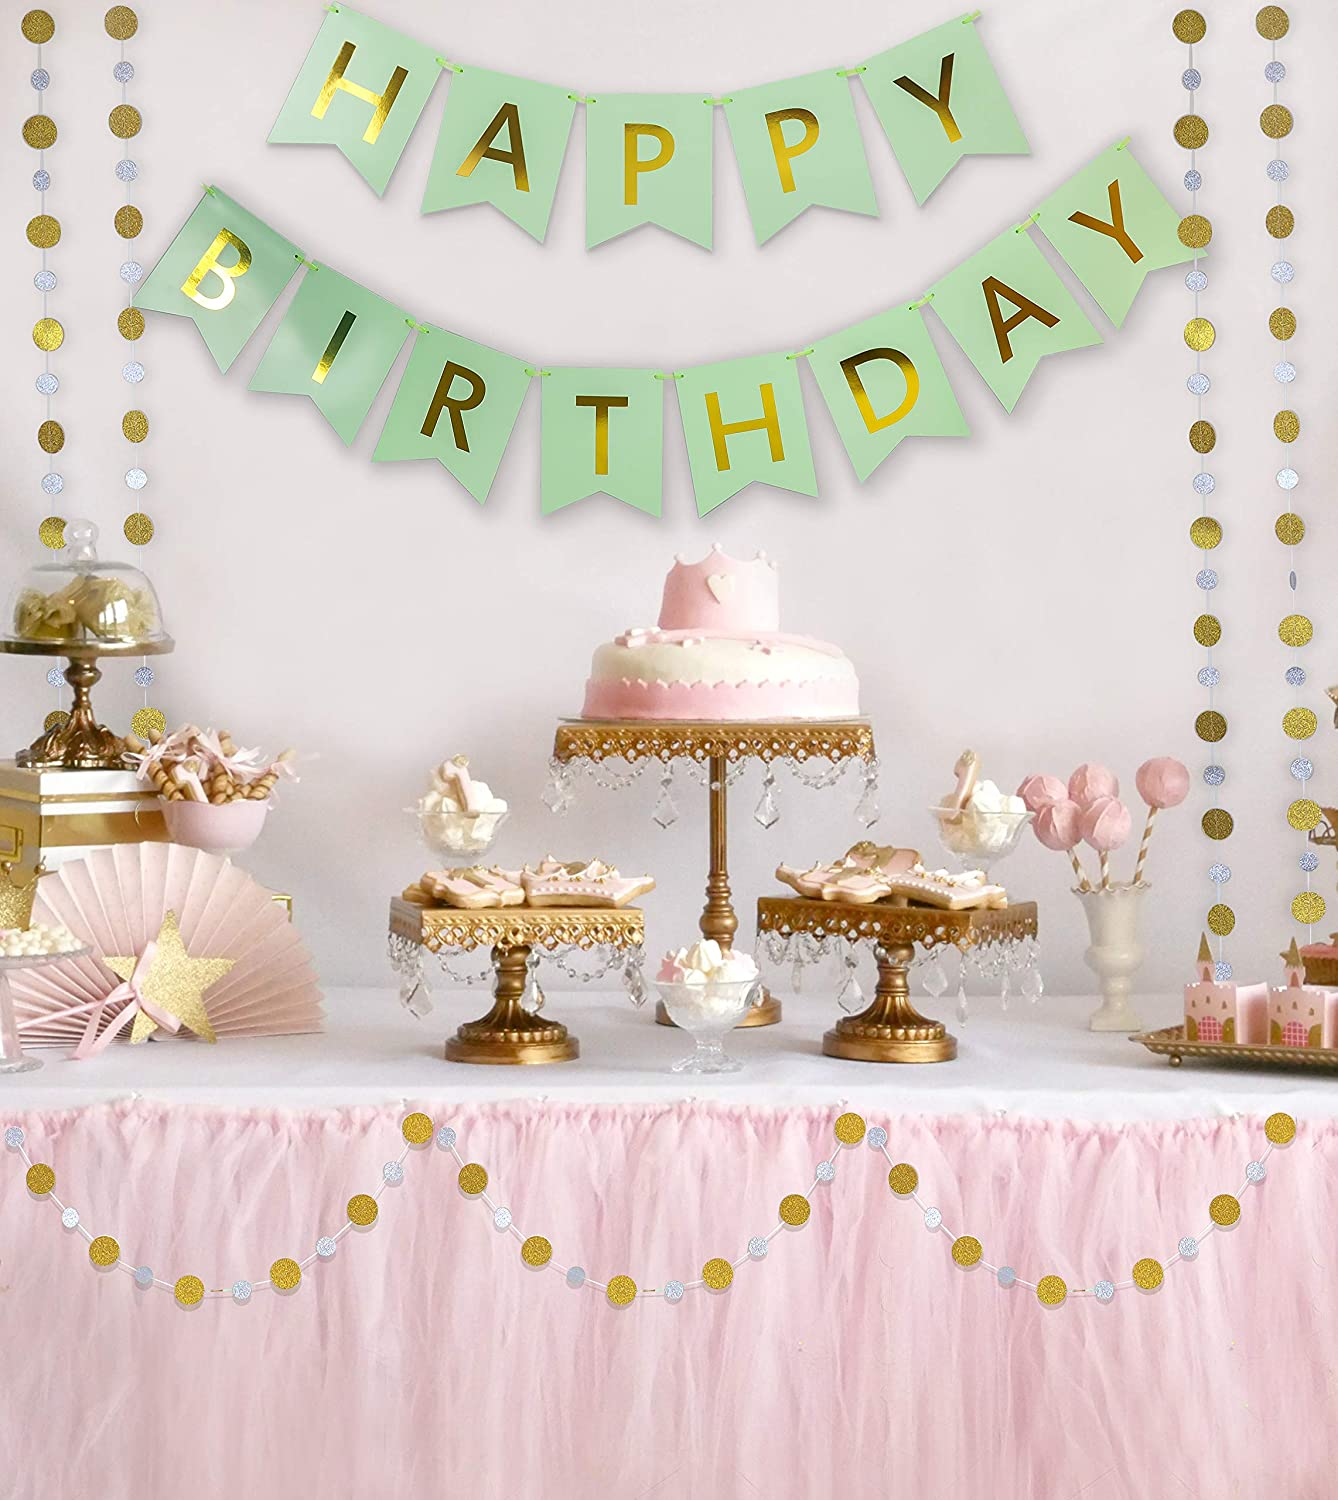 MAKFORT Mixed Color Happy Birthday Decoration Party Supplies for Adult or Baby Shower 1st Birthday with Happy Birthday Banner Birthday Balloons and Paper Pom Poms